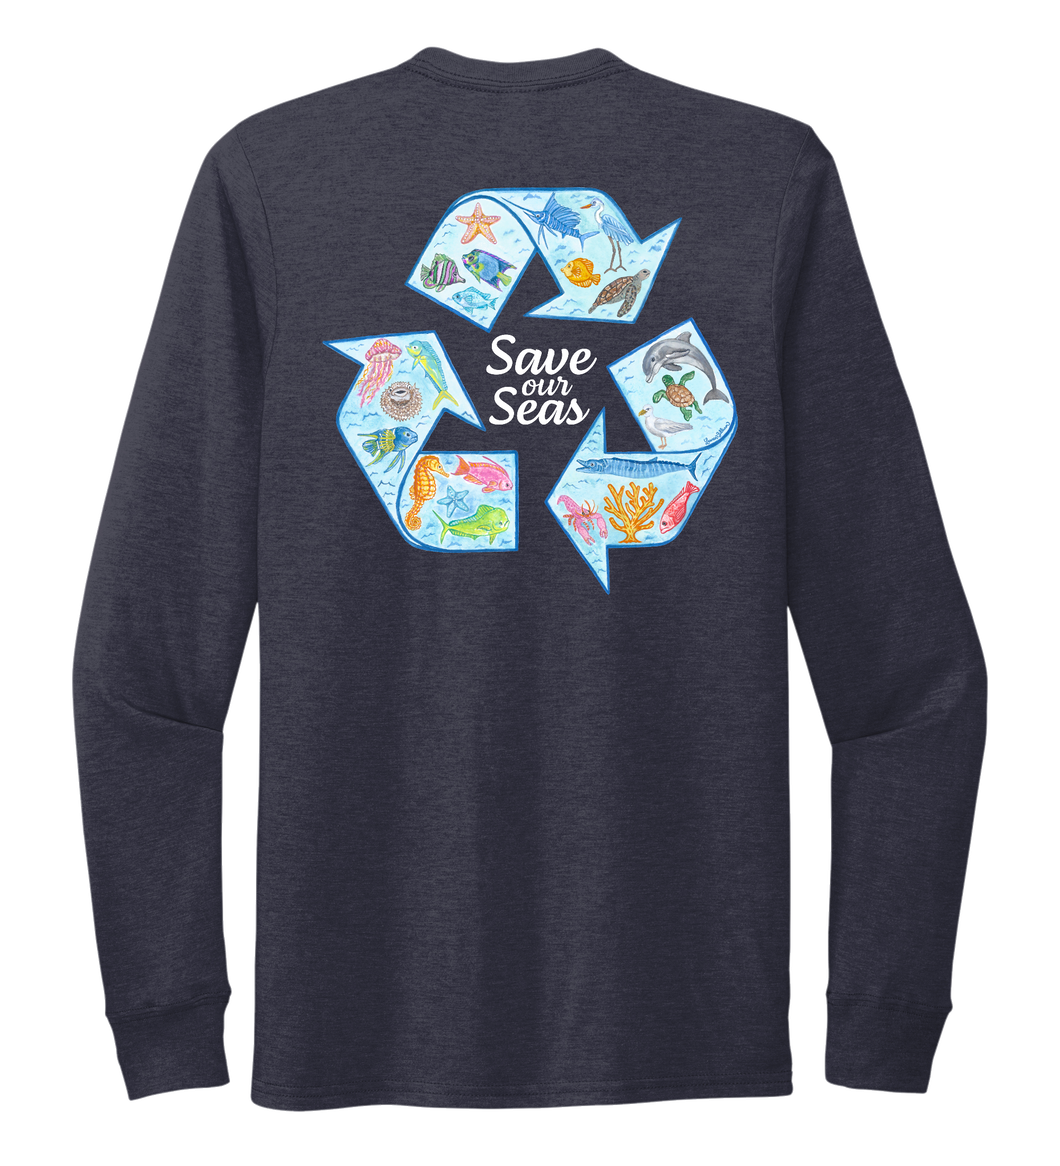 Lauren Gilliam, Recycle, Unisex Crew Neck Long Sleeve T-shirt in Deep Sea Blue